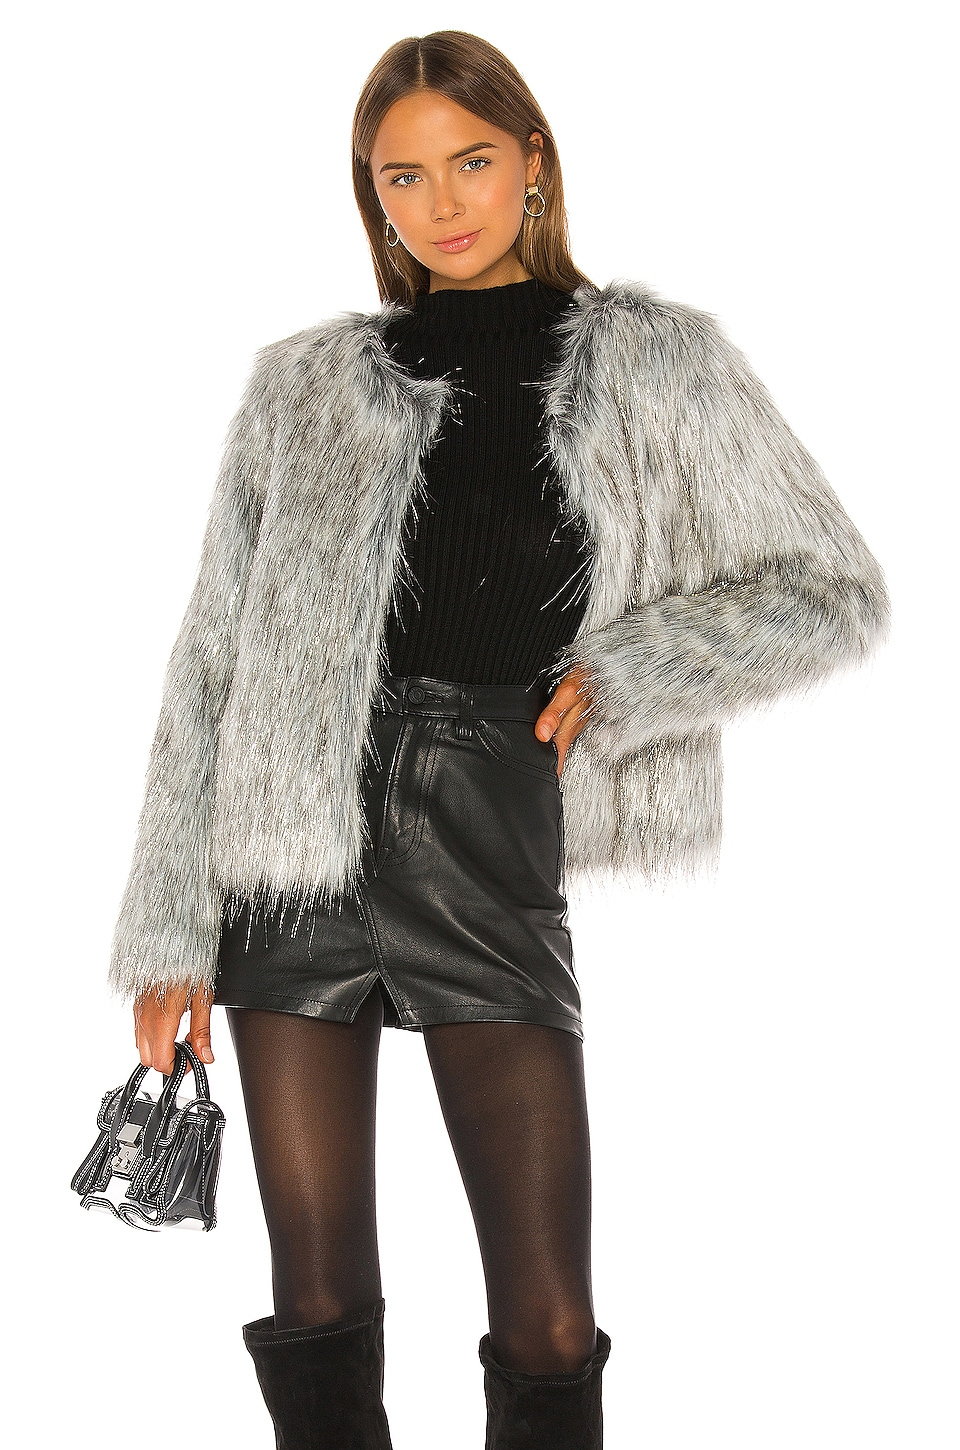 Unreal Fur Fire and Ice Jacket in Grey & Silver